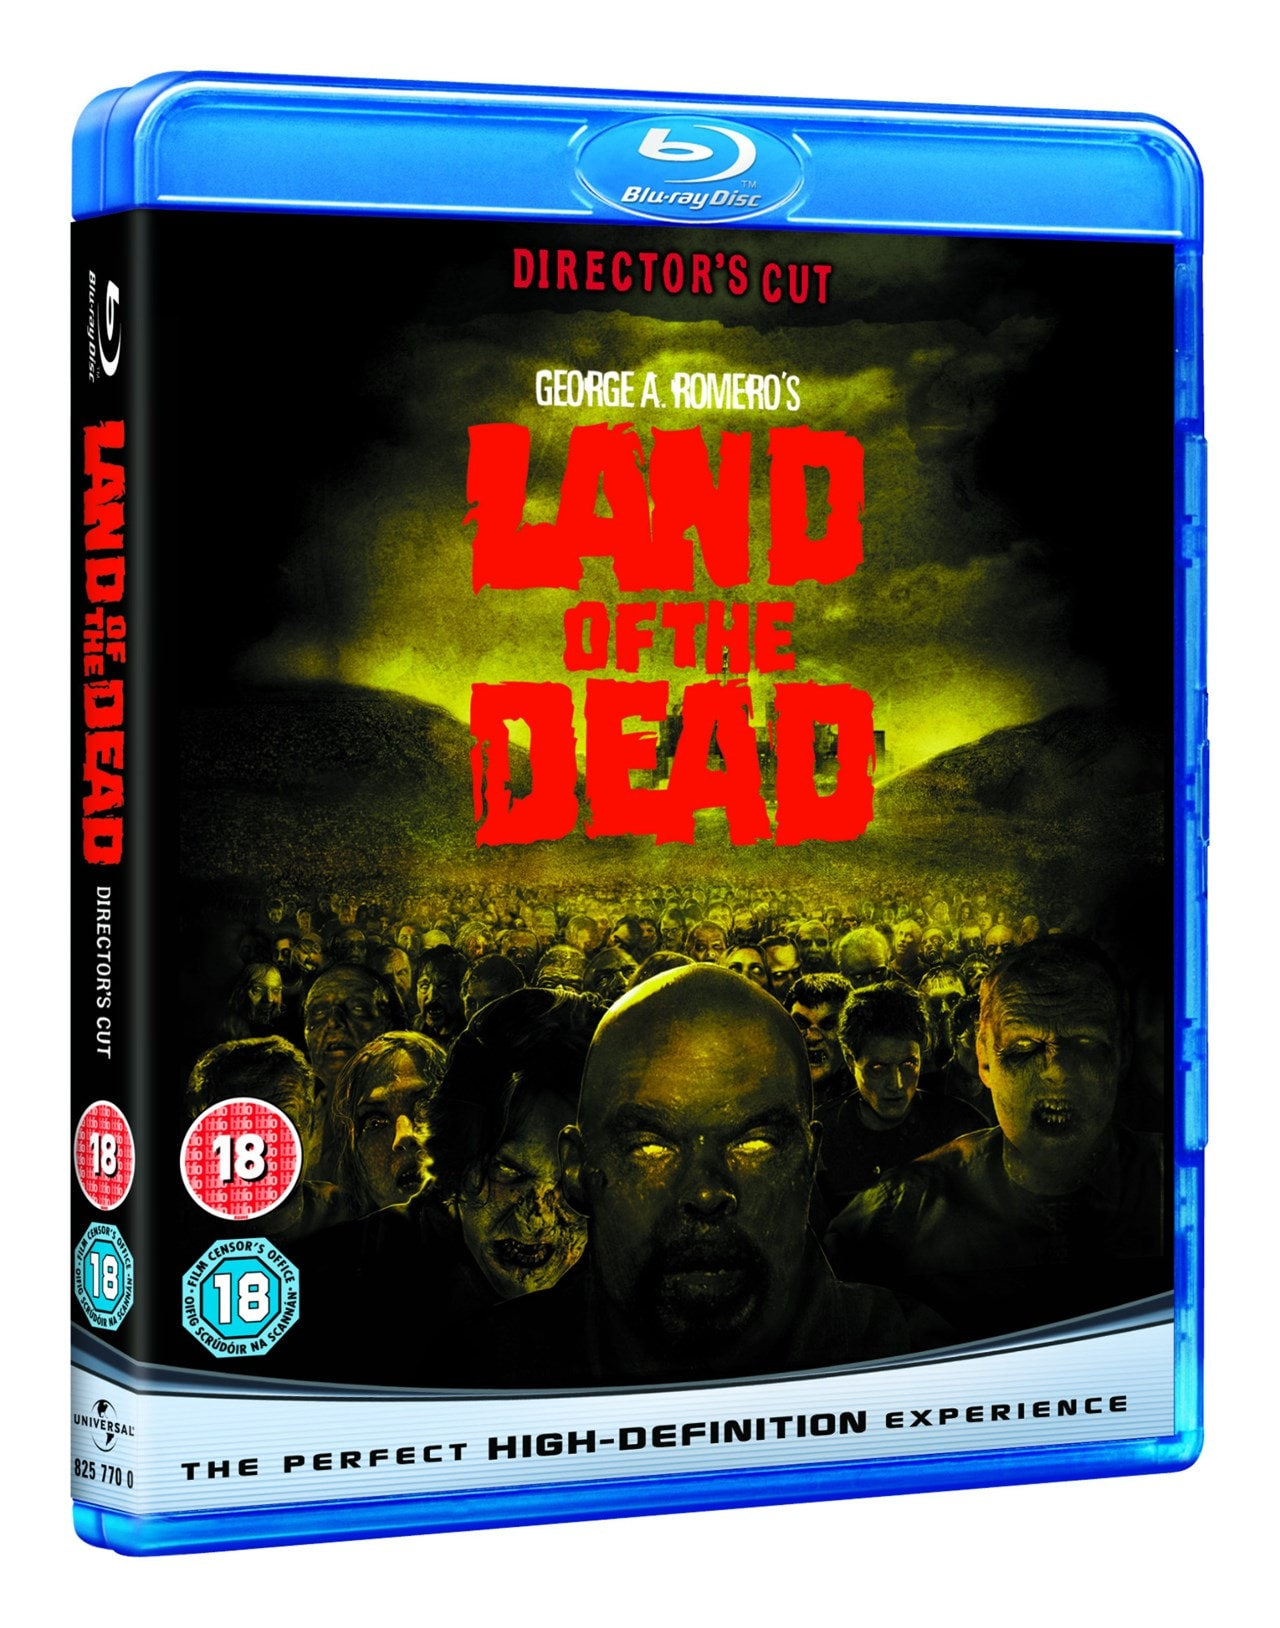 George A. Romero's Land of the Dead - 1